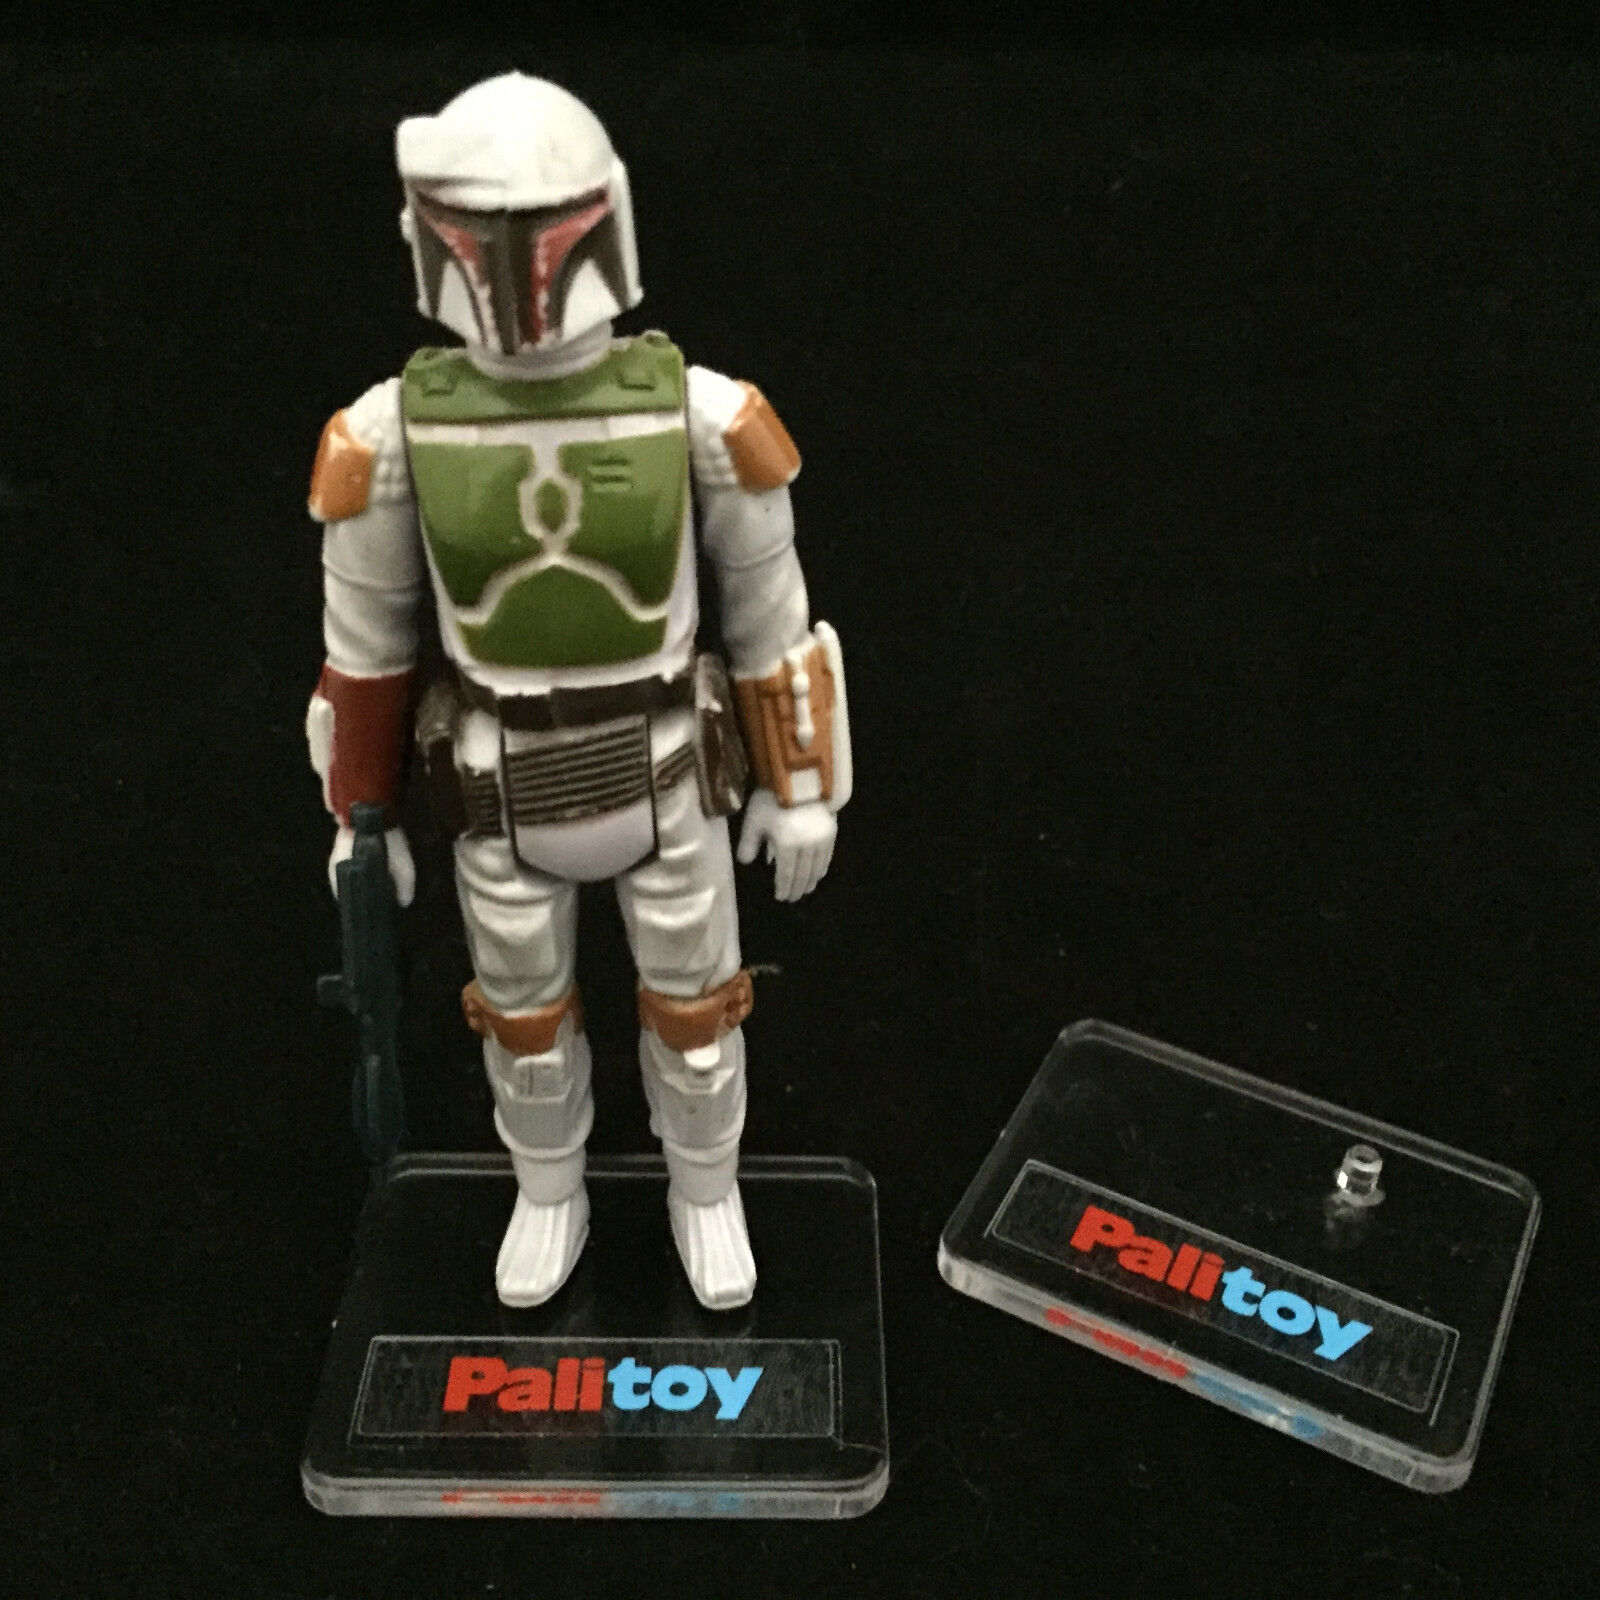 100 x DELUXE VINTAGE STAR WARS ACTION FIGURE DISPLAY STANDS  BRAND-NEW  -PALITOY